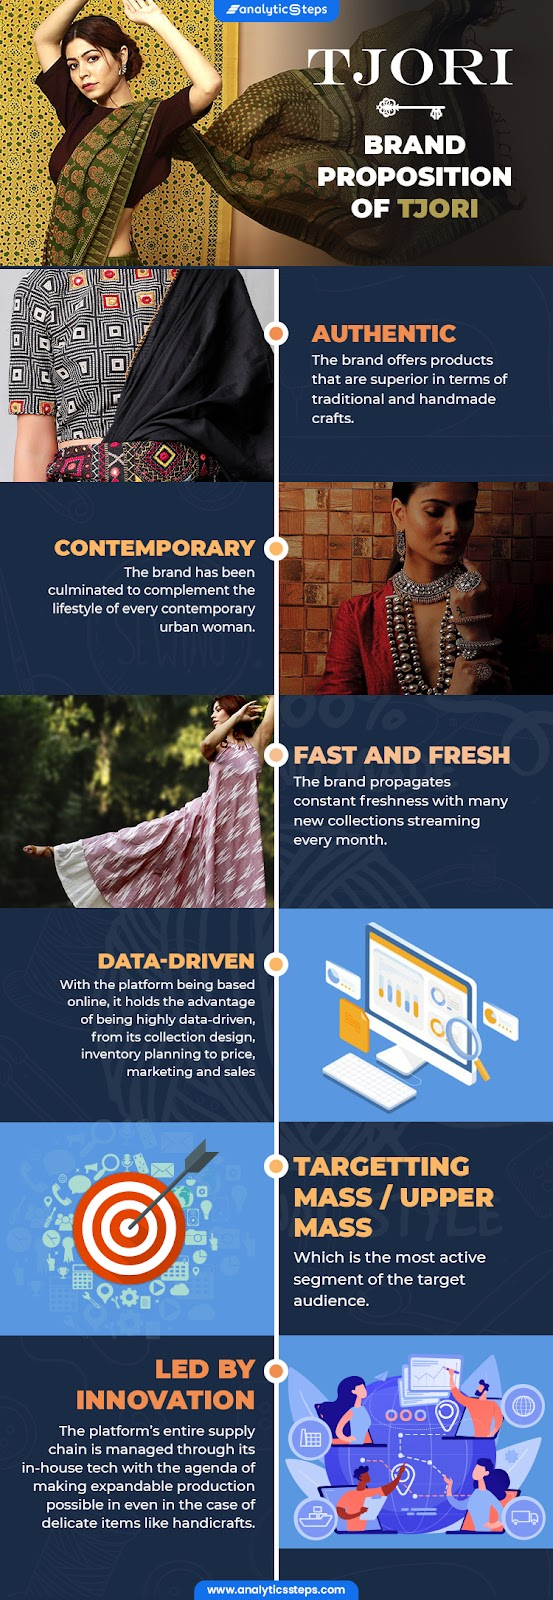 From being authentic, contemporary, fast and fresh, data-driven, targeting mass/upper mass to being led by innovation, there are many perks in Tjori's brand proposition.